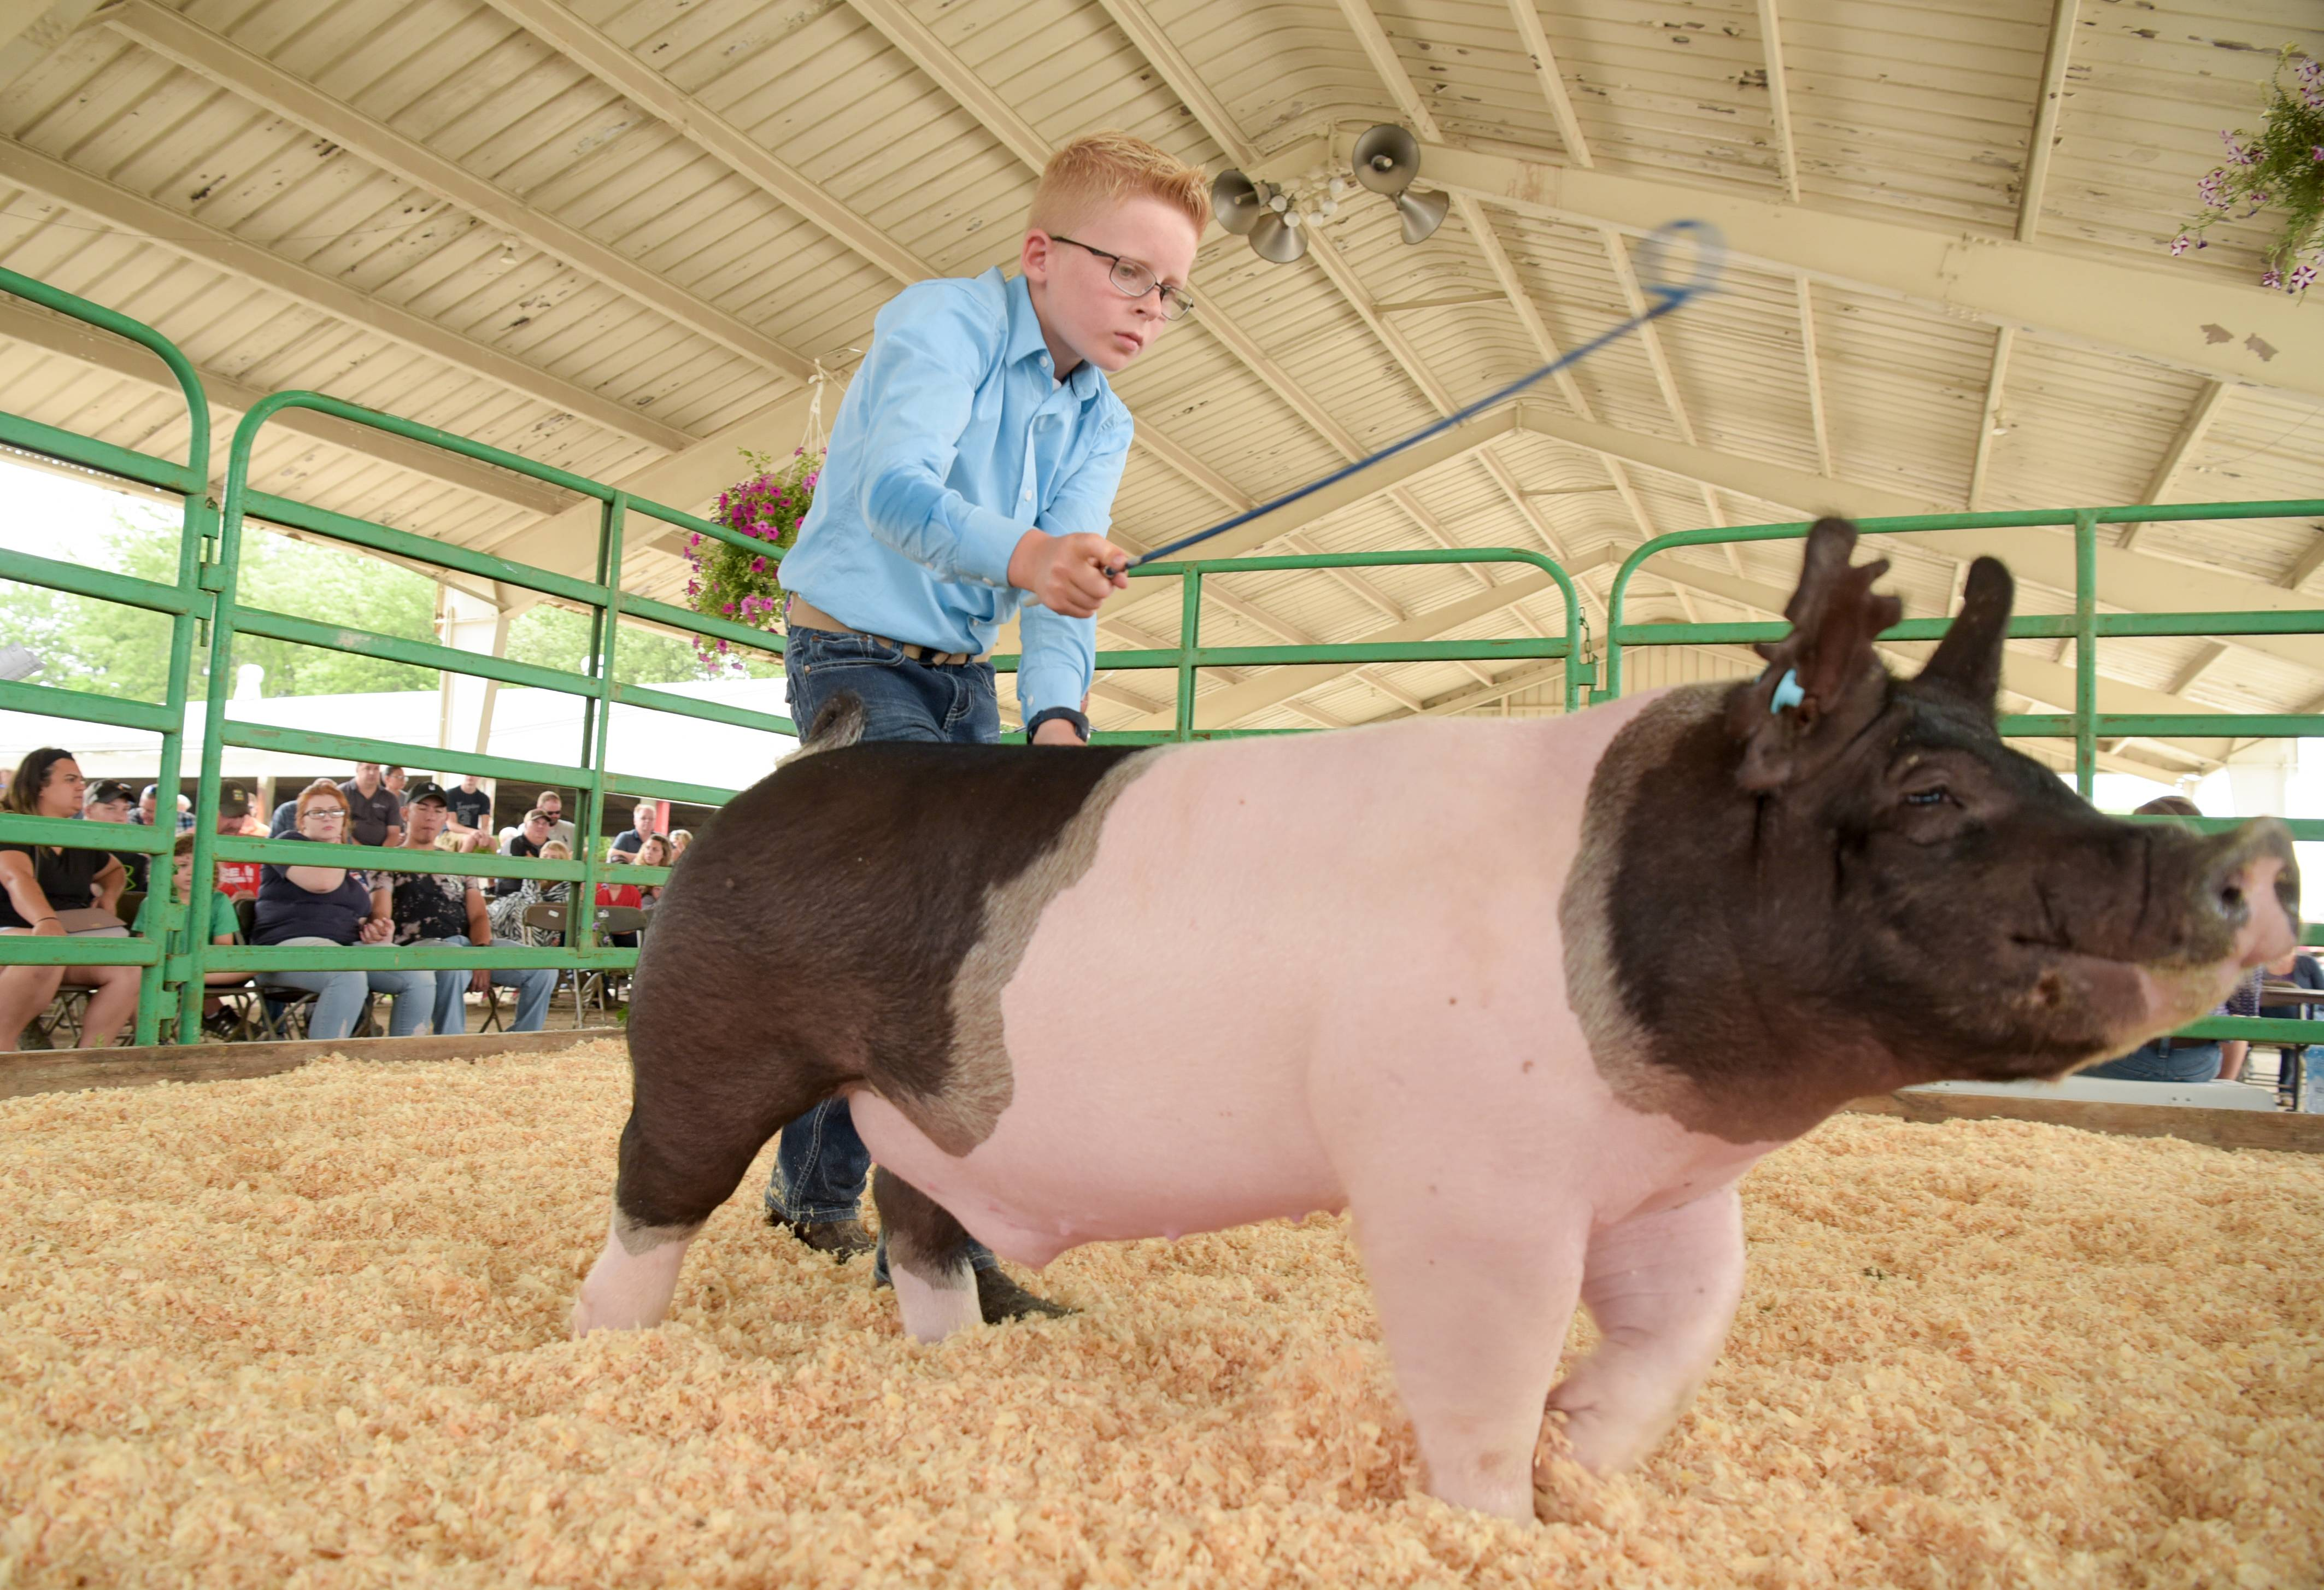 Ethan Stohlquist, 10, of Poplar Grove shows his Grand Champion Pen of Barrows hog Sunday during the auction at the 2018 Kane County Fair in St. Charles. The 150th edition of the annual fair wrapped up Sunday.